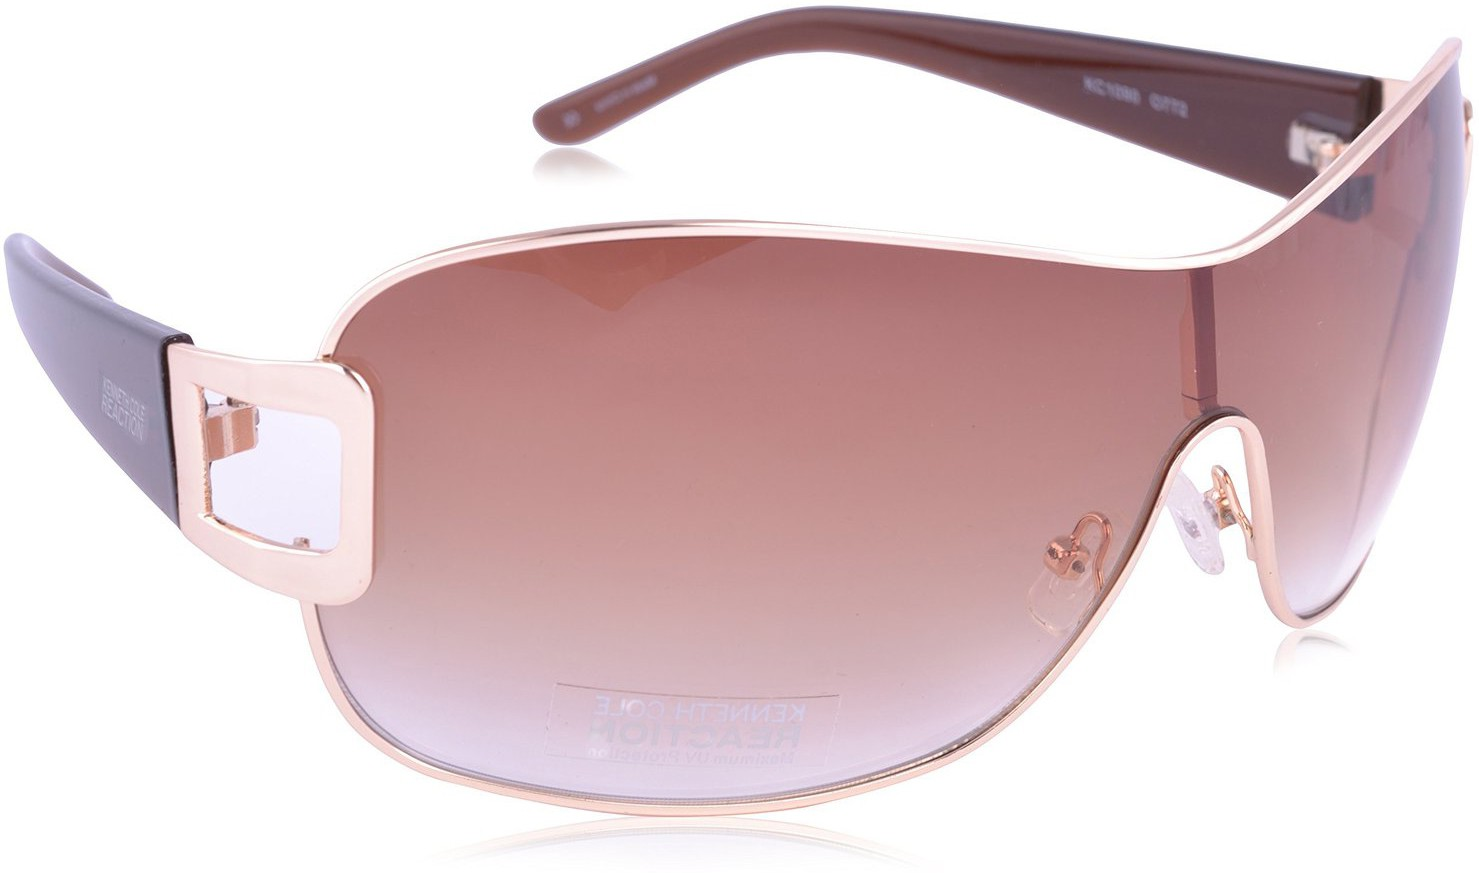 Deals - Delhi - Premium Sunglasses <br> FCUK,Oakley,Carrera,kenneth cole & more<br> Category - sunglasses<br> Business - Flipkart.com